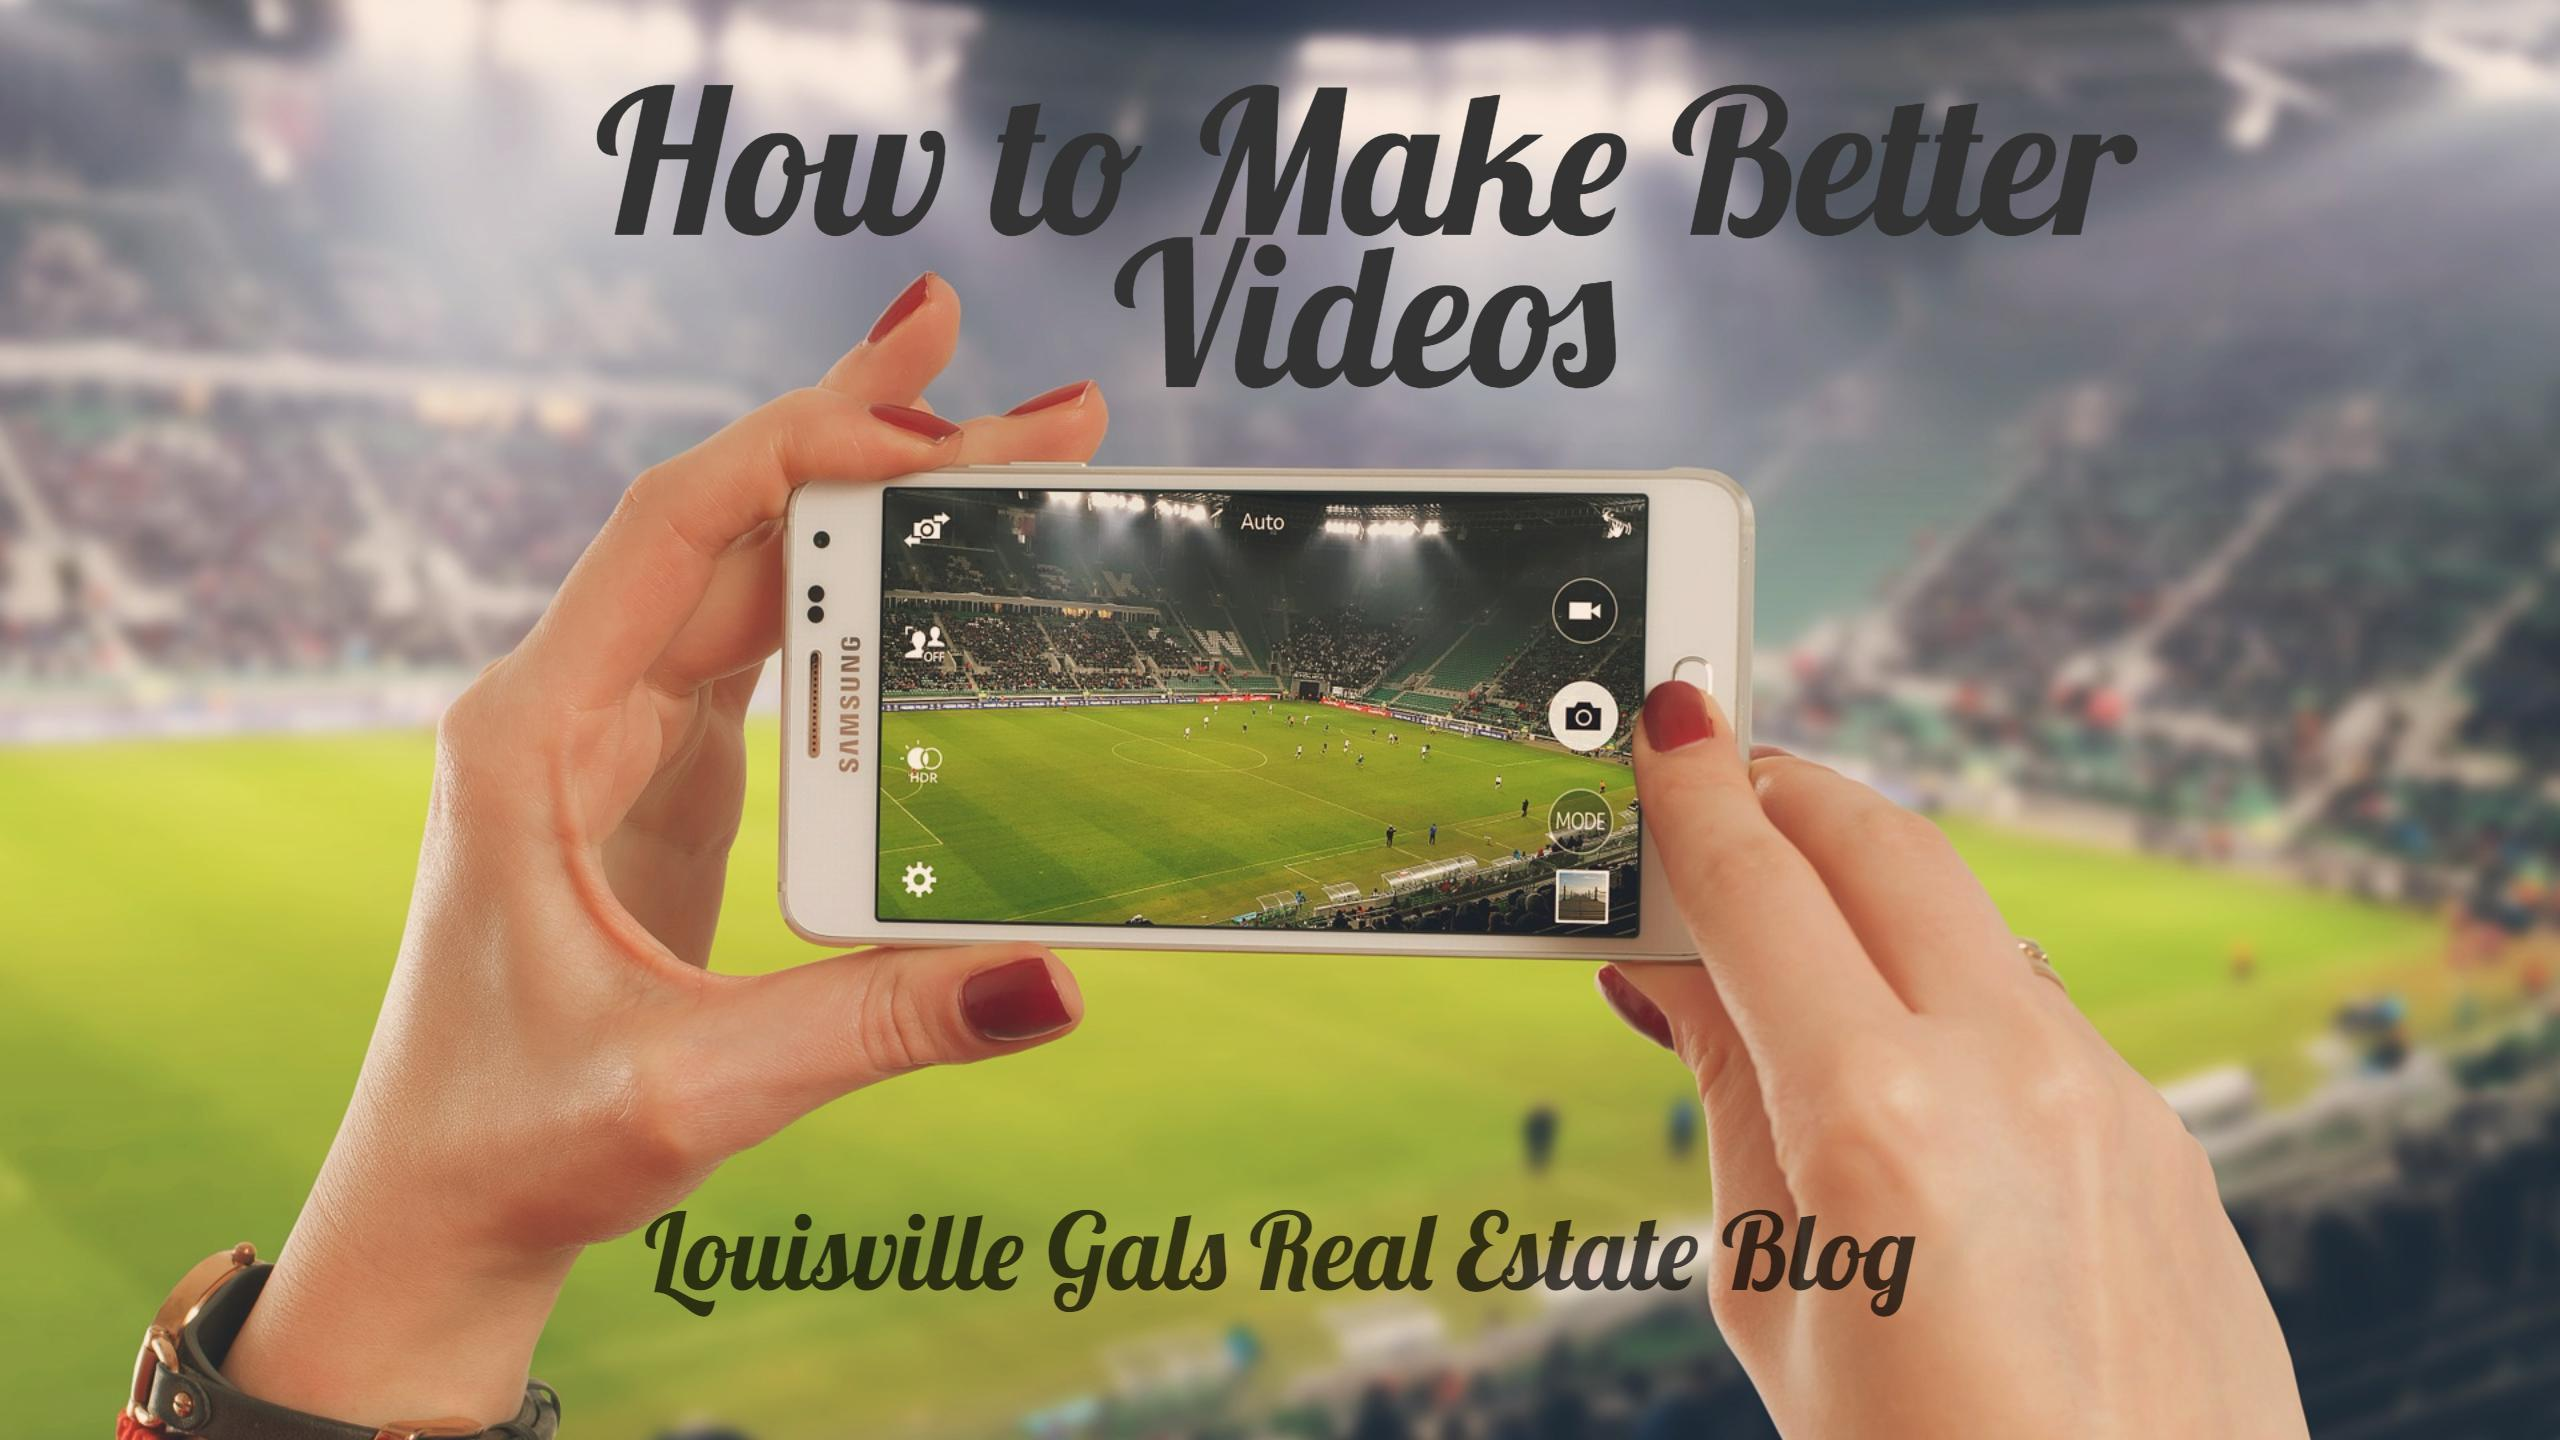 How to Make Better Videos with Your Smartphone